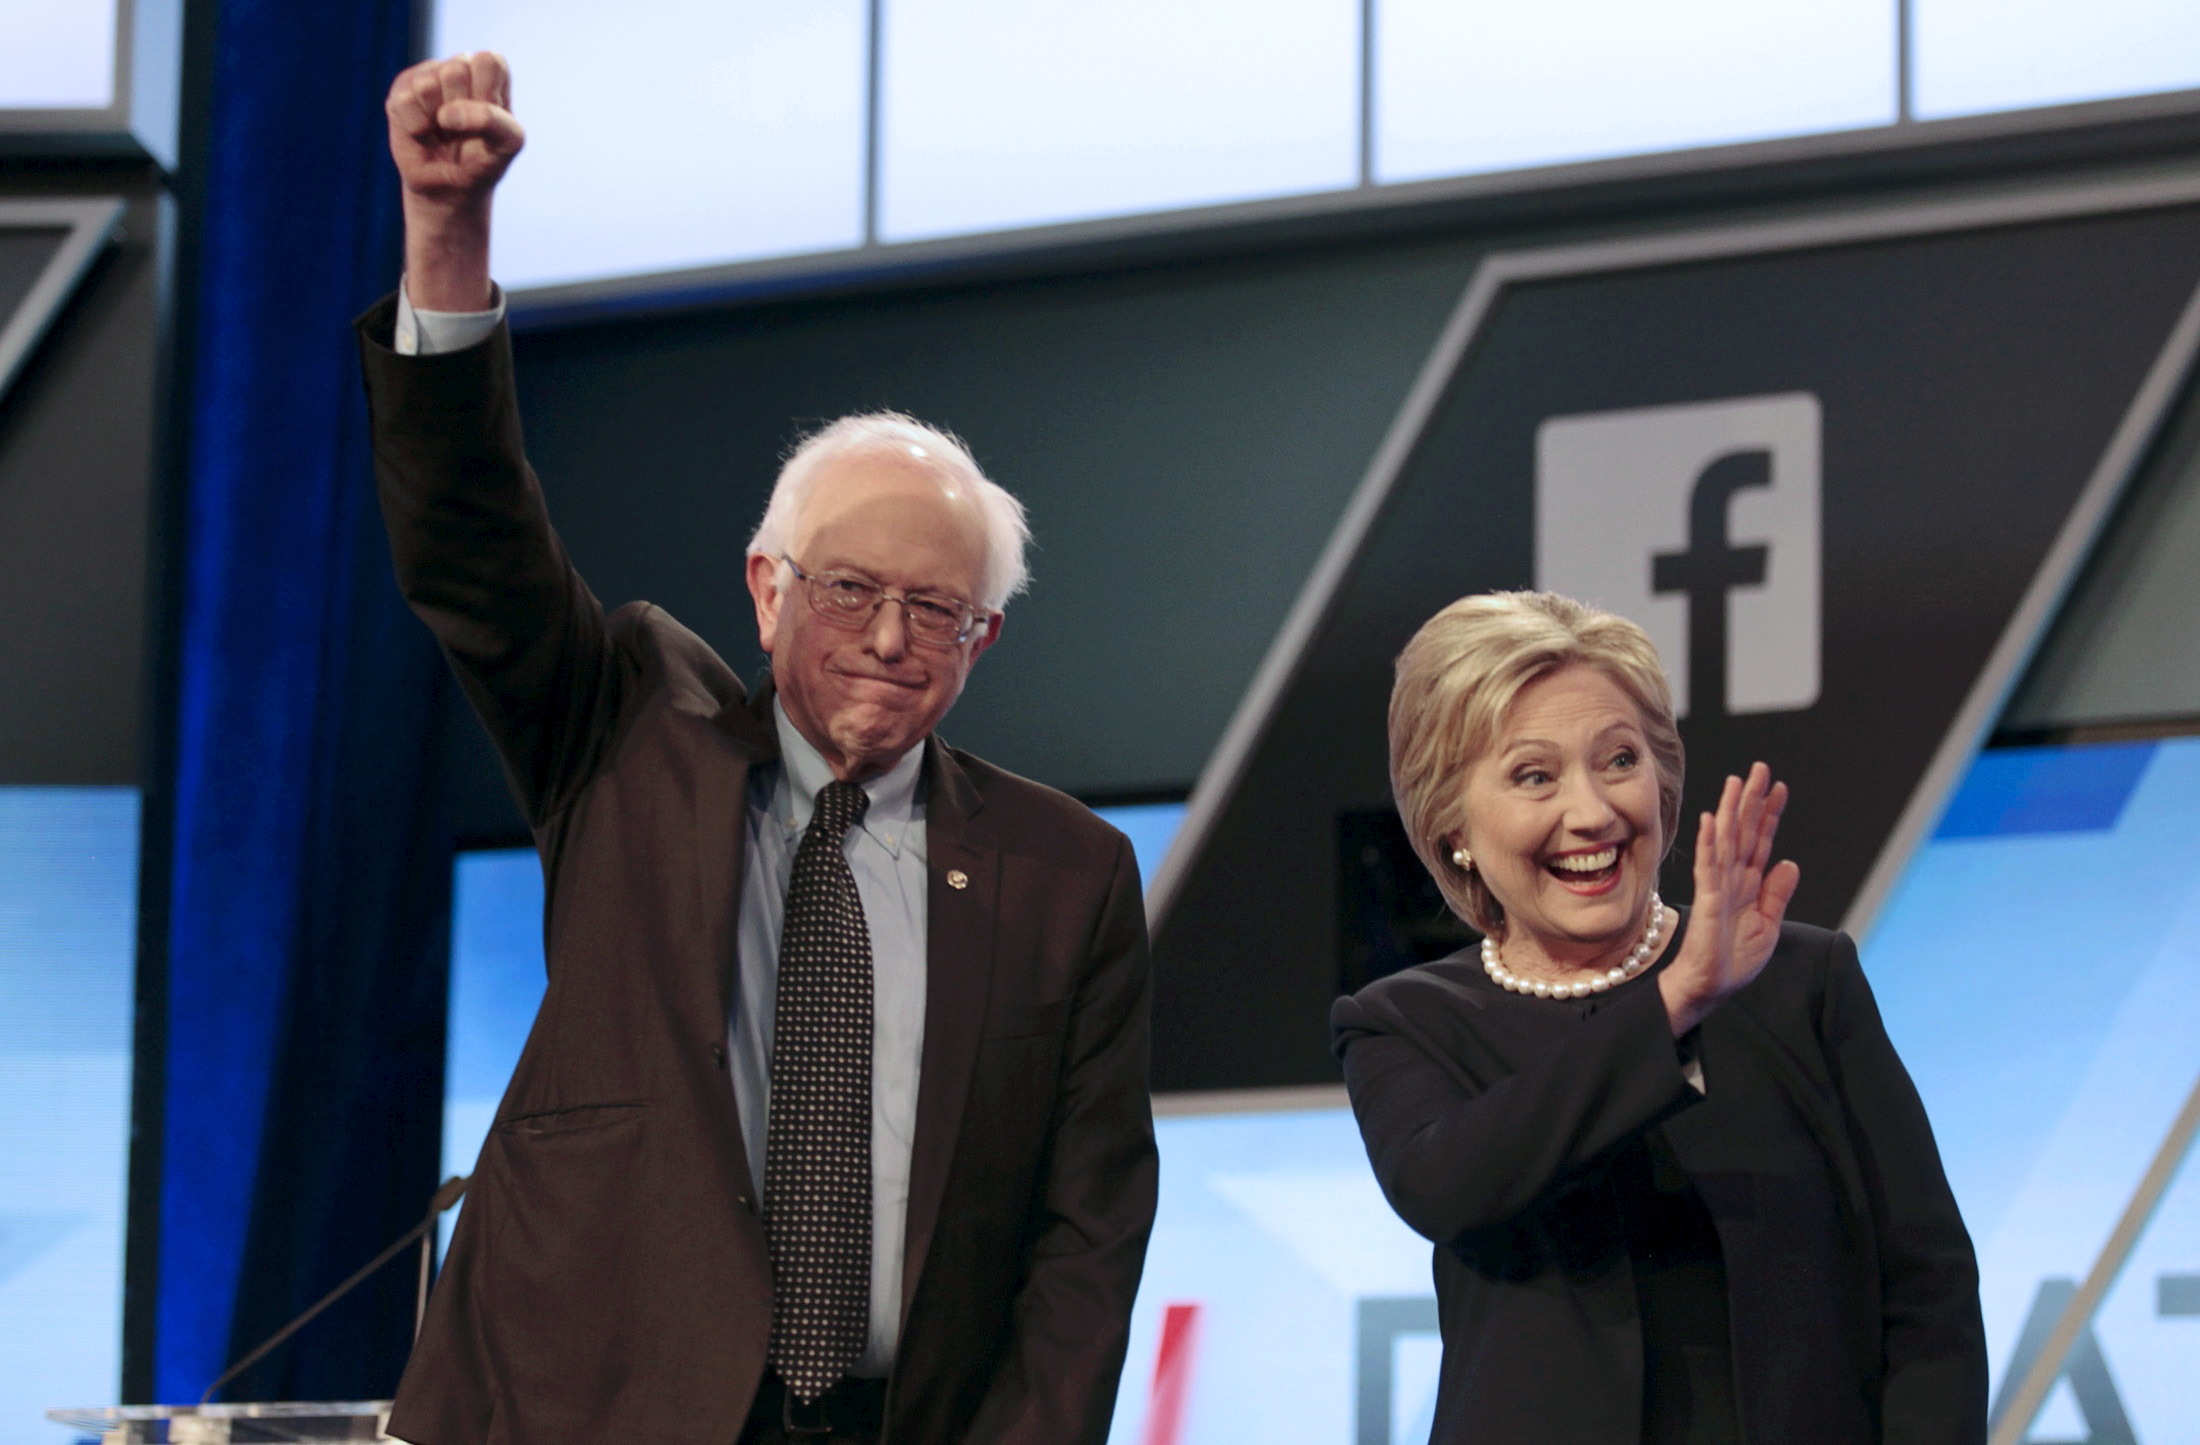 Democratic U.S. presidential candidates Senator Bernie Sanders and Hillary Clinton wave before the start of the Univision News and Washington Post Democratic U.S. presidential candidates debate in Kendall